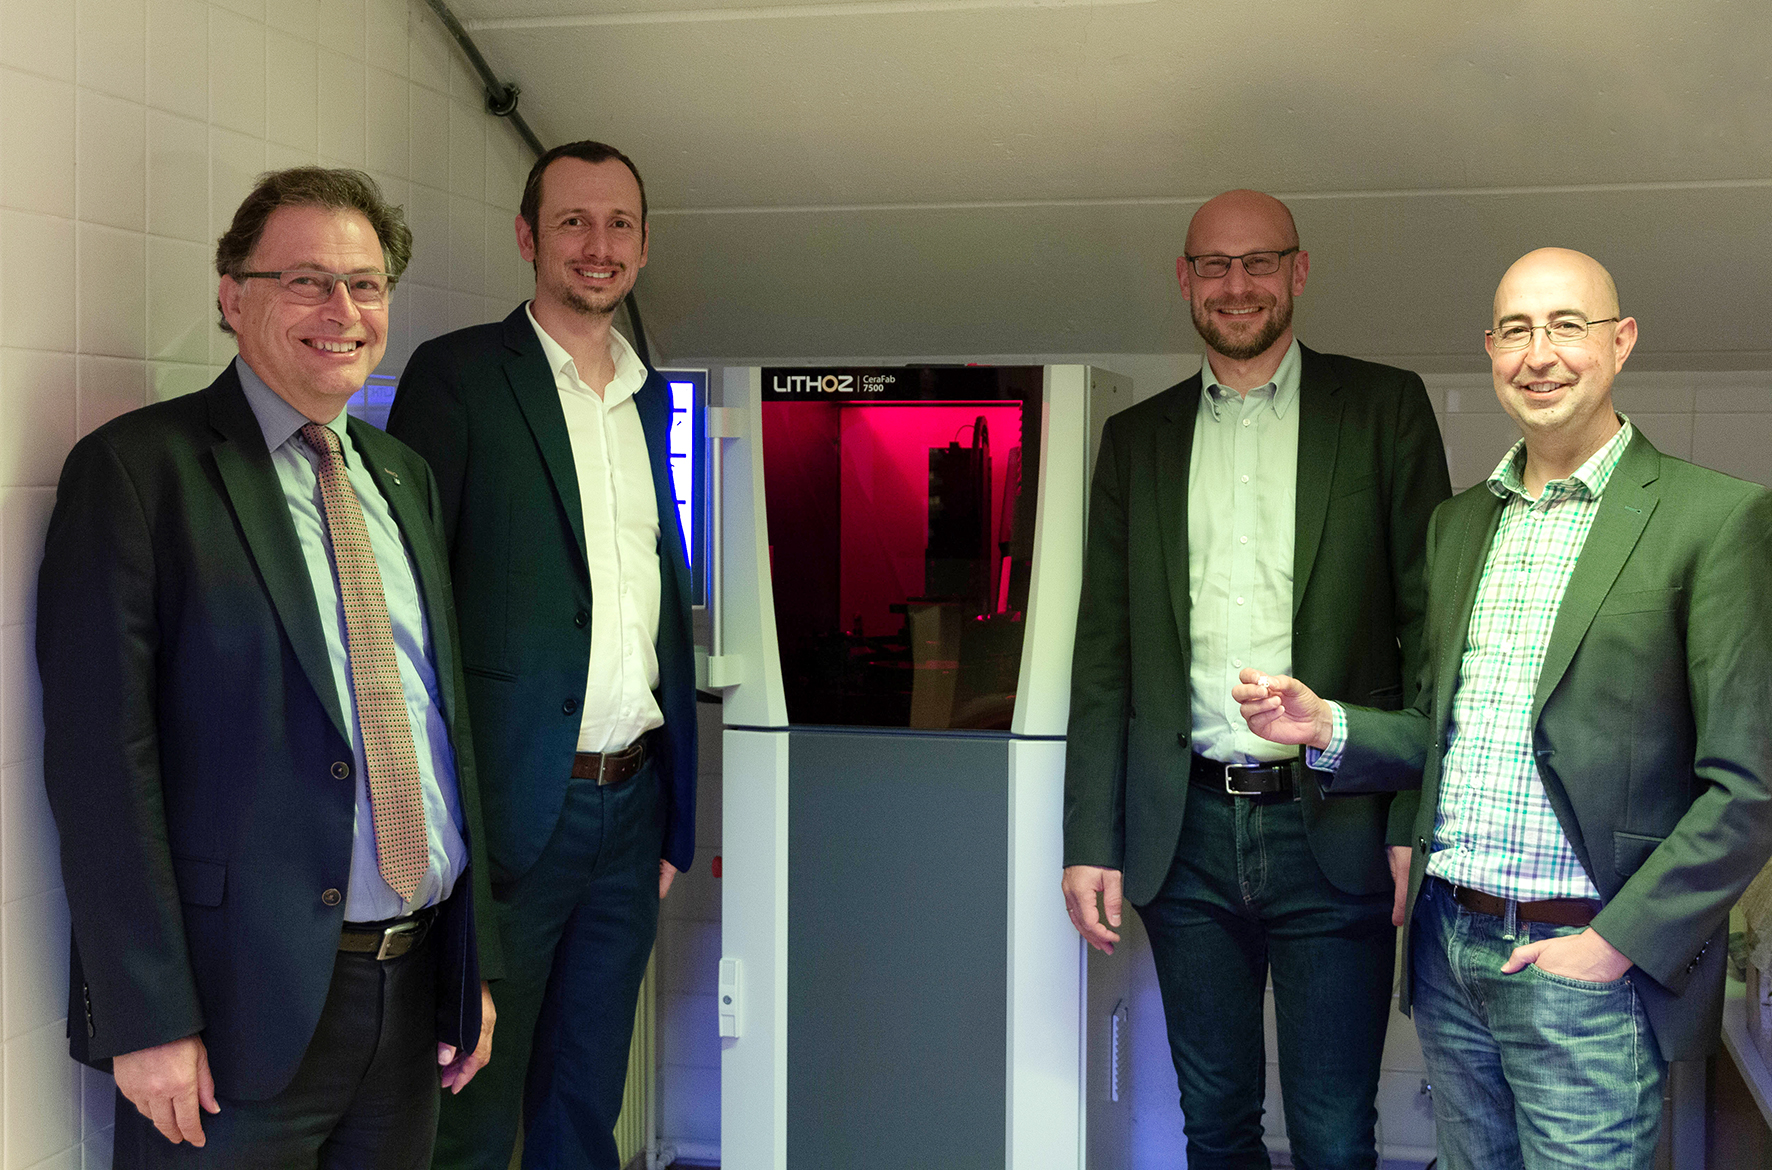 Group photo of the handover of the 3D printer in the Peter Tunner building with, from the left, Rector Wilfried Eichlseder, Assoz.Prof. Dr. Thomas Grießer, Lithoz-CEO Dr. Johannes Homa, Univ.-Prof. Dr. Raul Bermejo Moratinos.